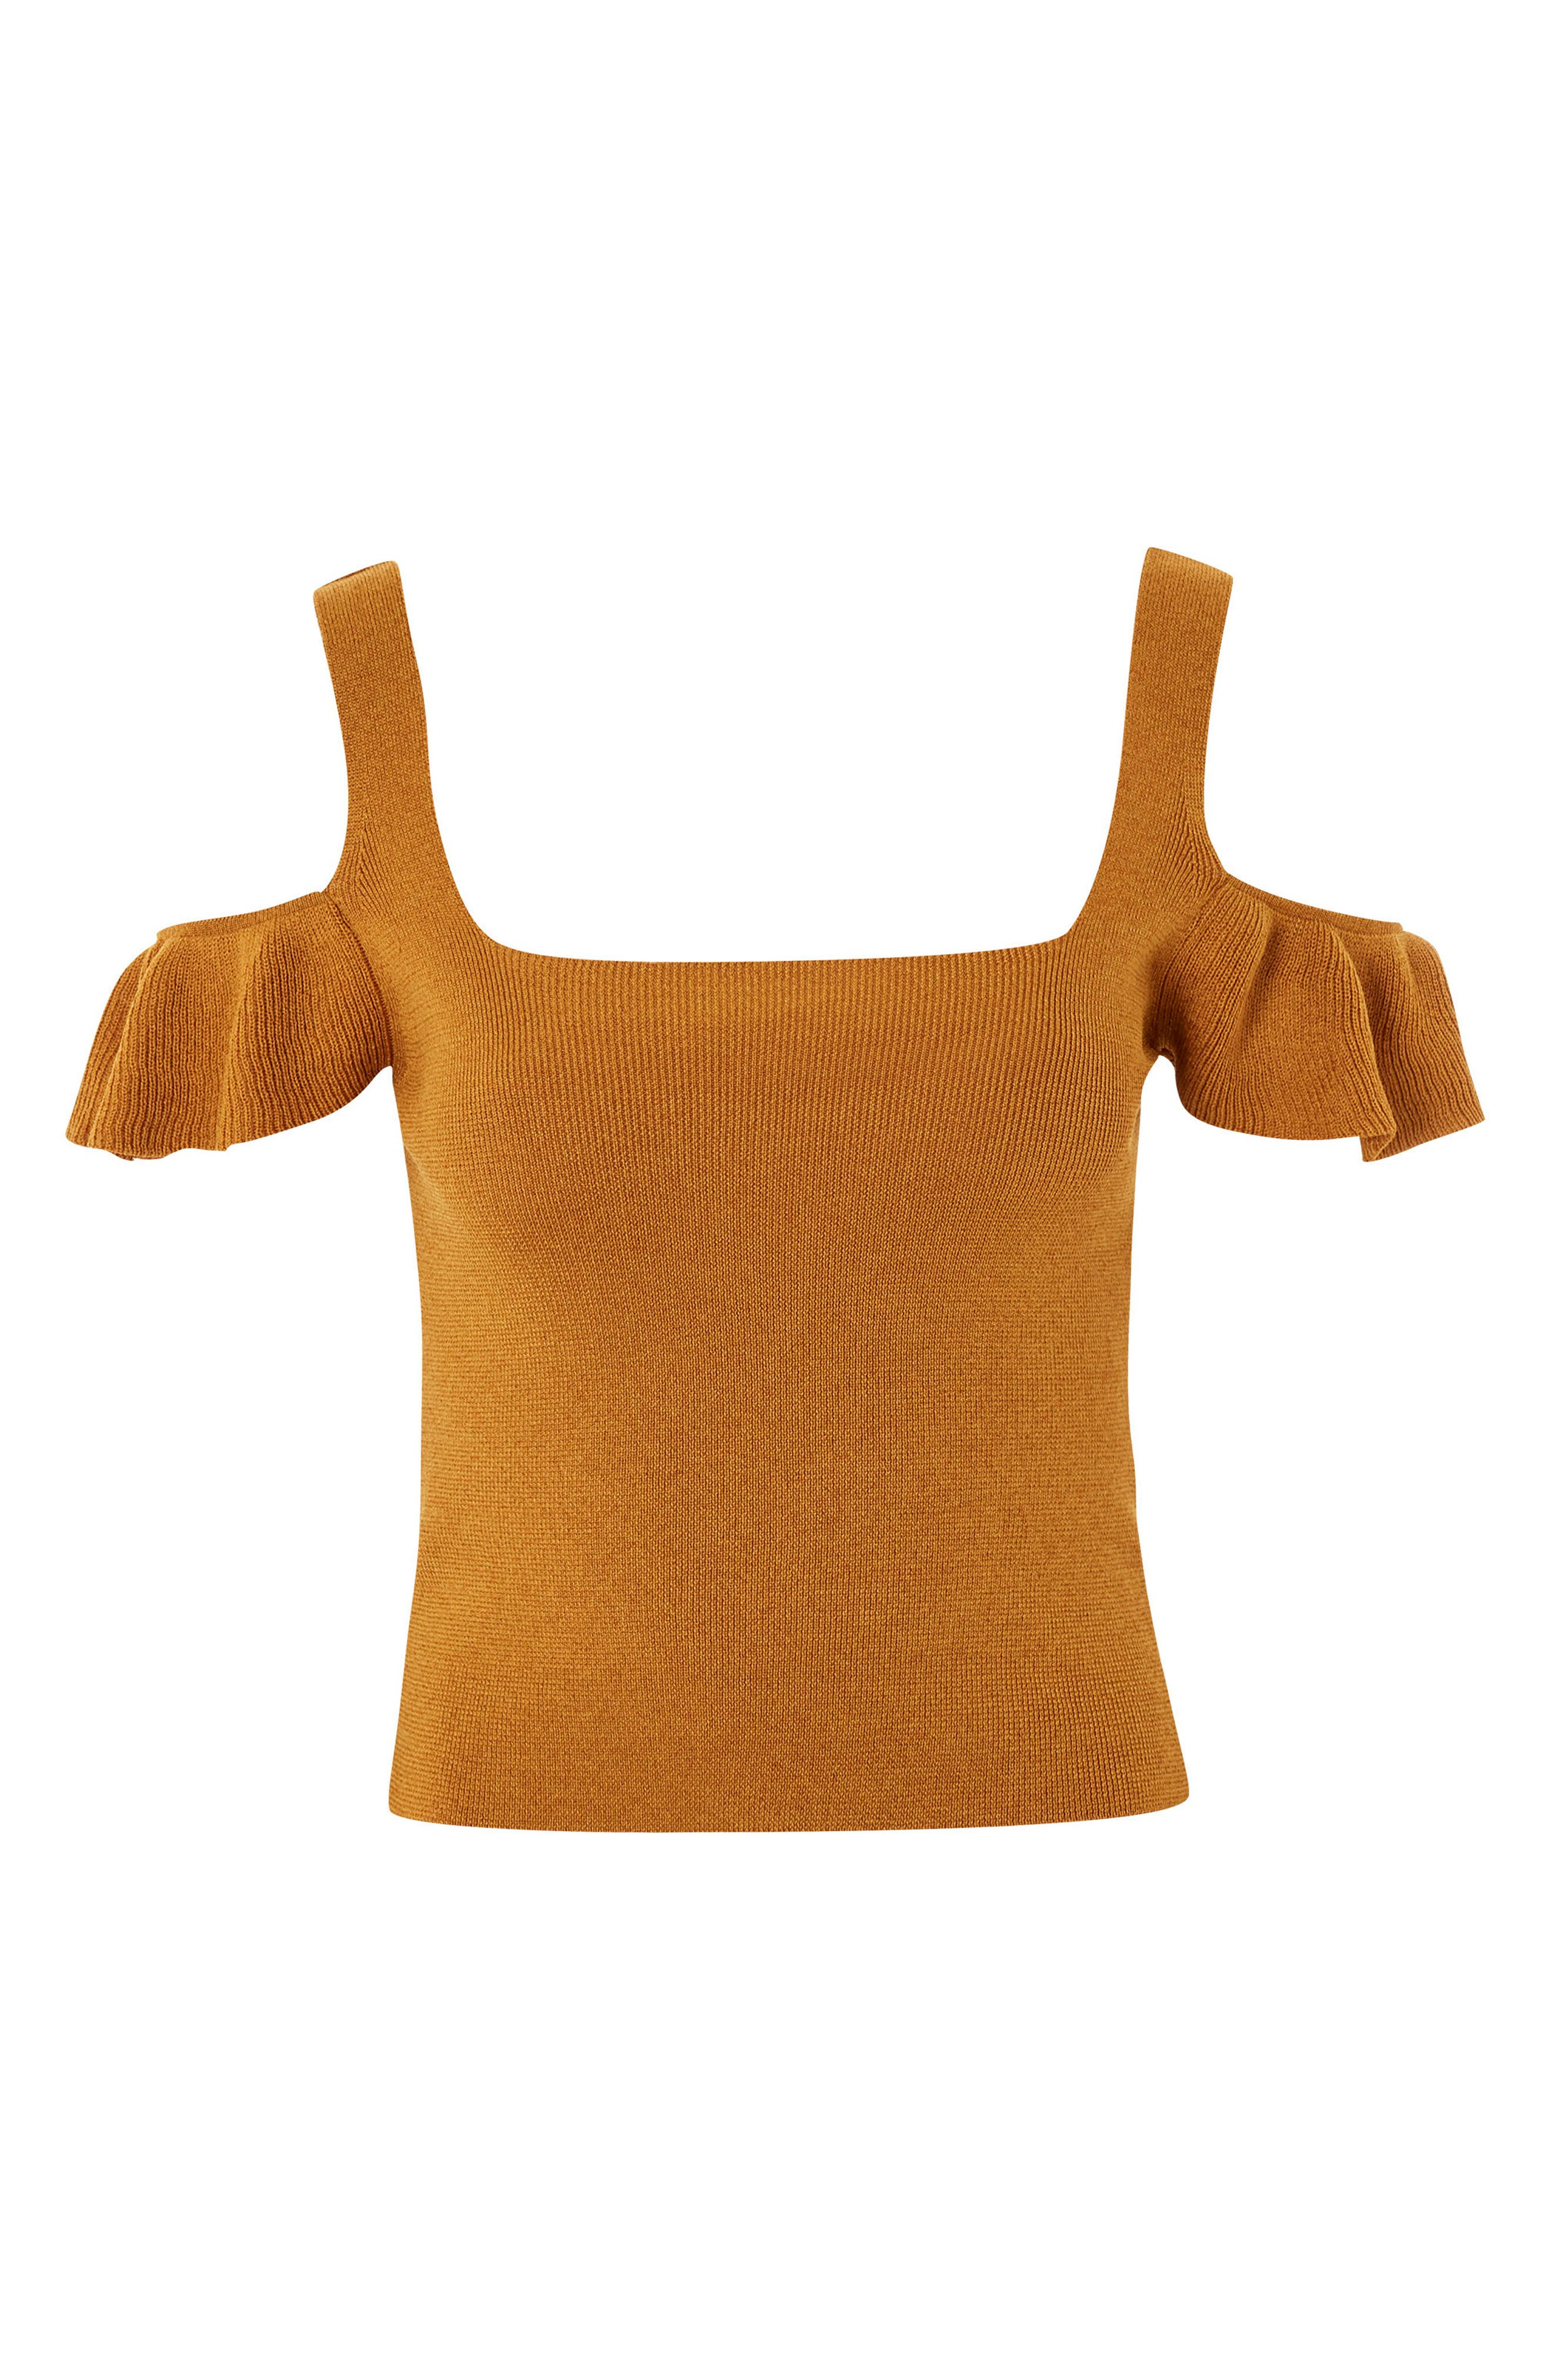 Ruffle Cold Shoulder Knit Top,                             Main thumbnail 1, color,                             Mustard